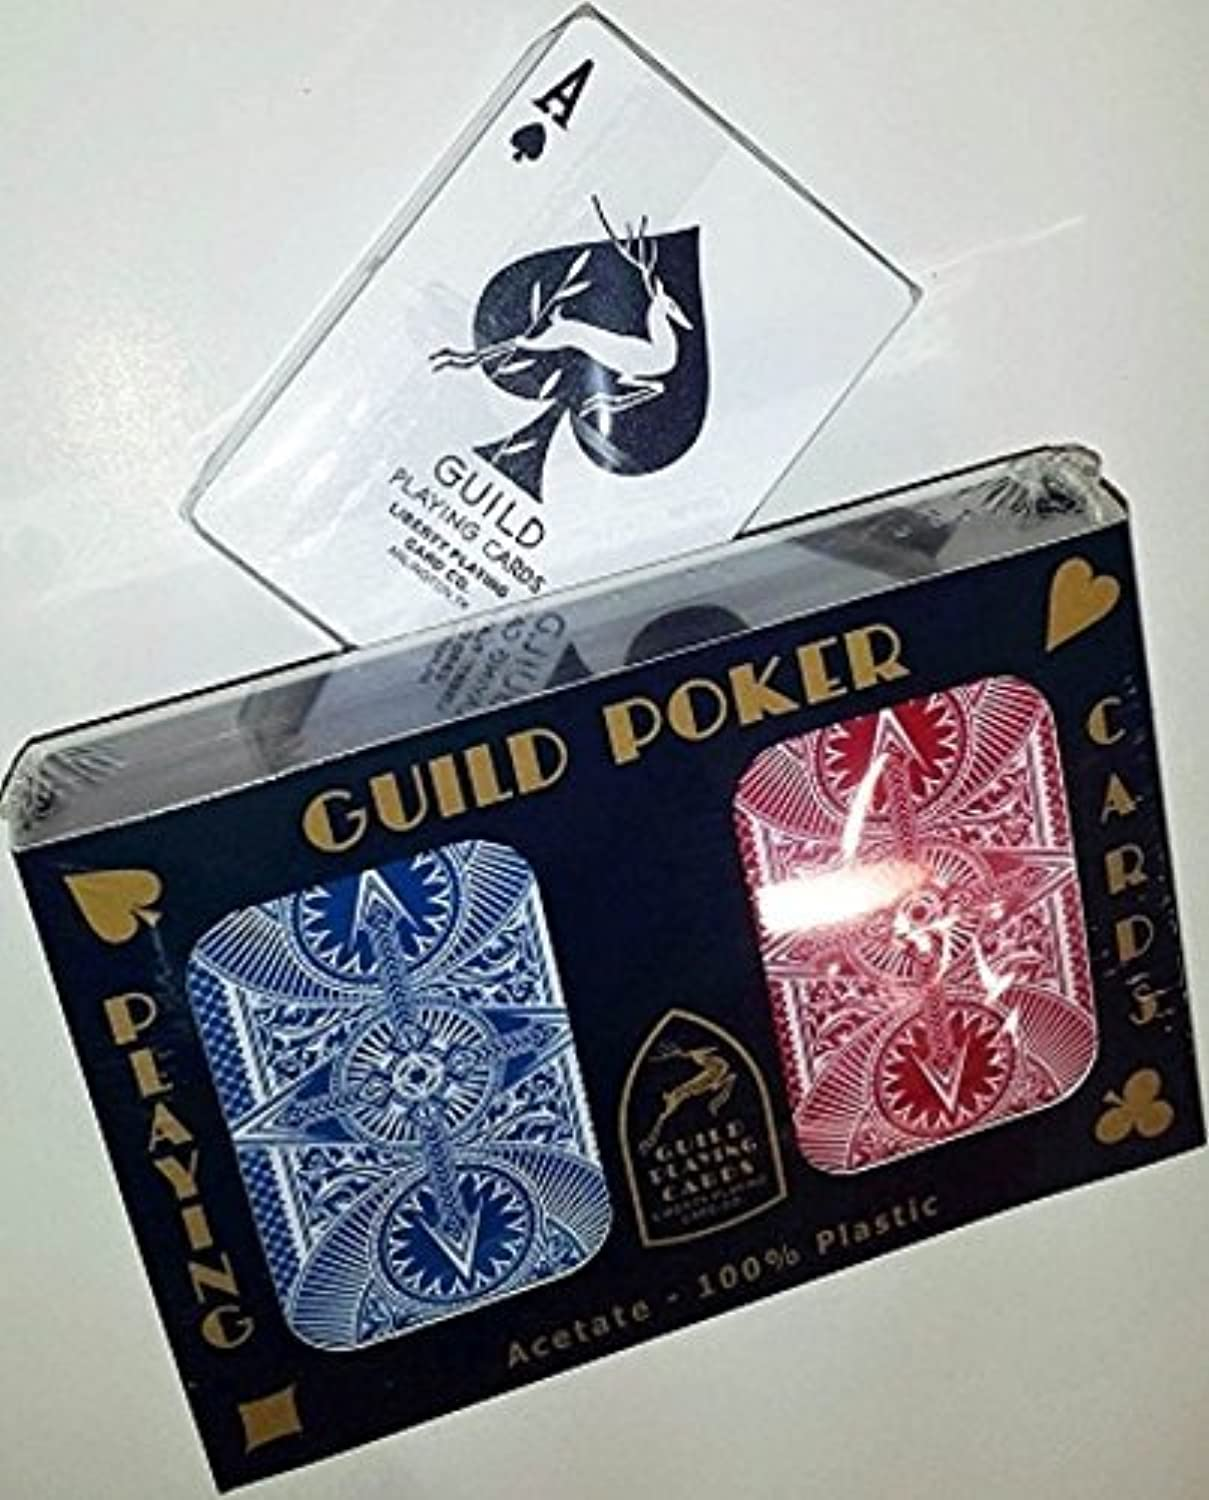 Guild Arc and Arrow Red & blueee Poker Standard Index Playing Cards Plastic